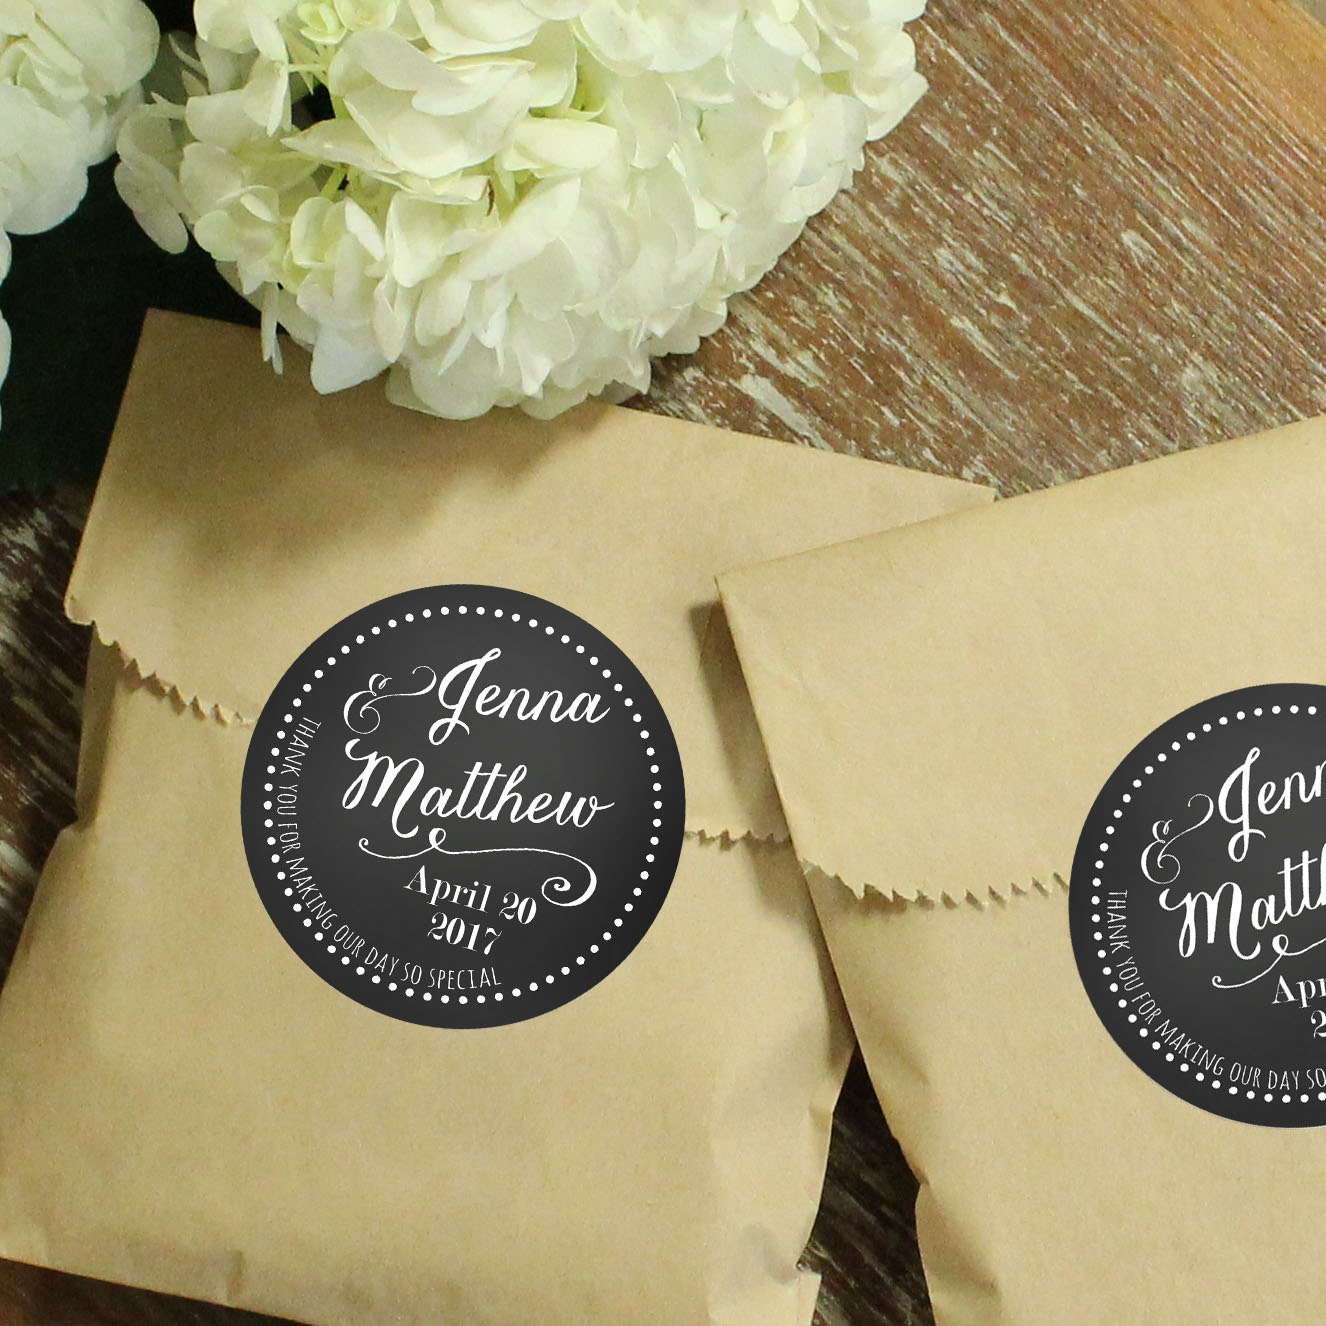 Wedding Labels For Gift Bags: 24 Wedding Favor Bags With Personalized Labels Jenna Label